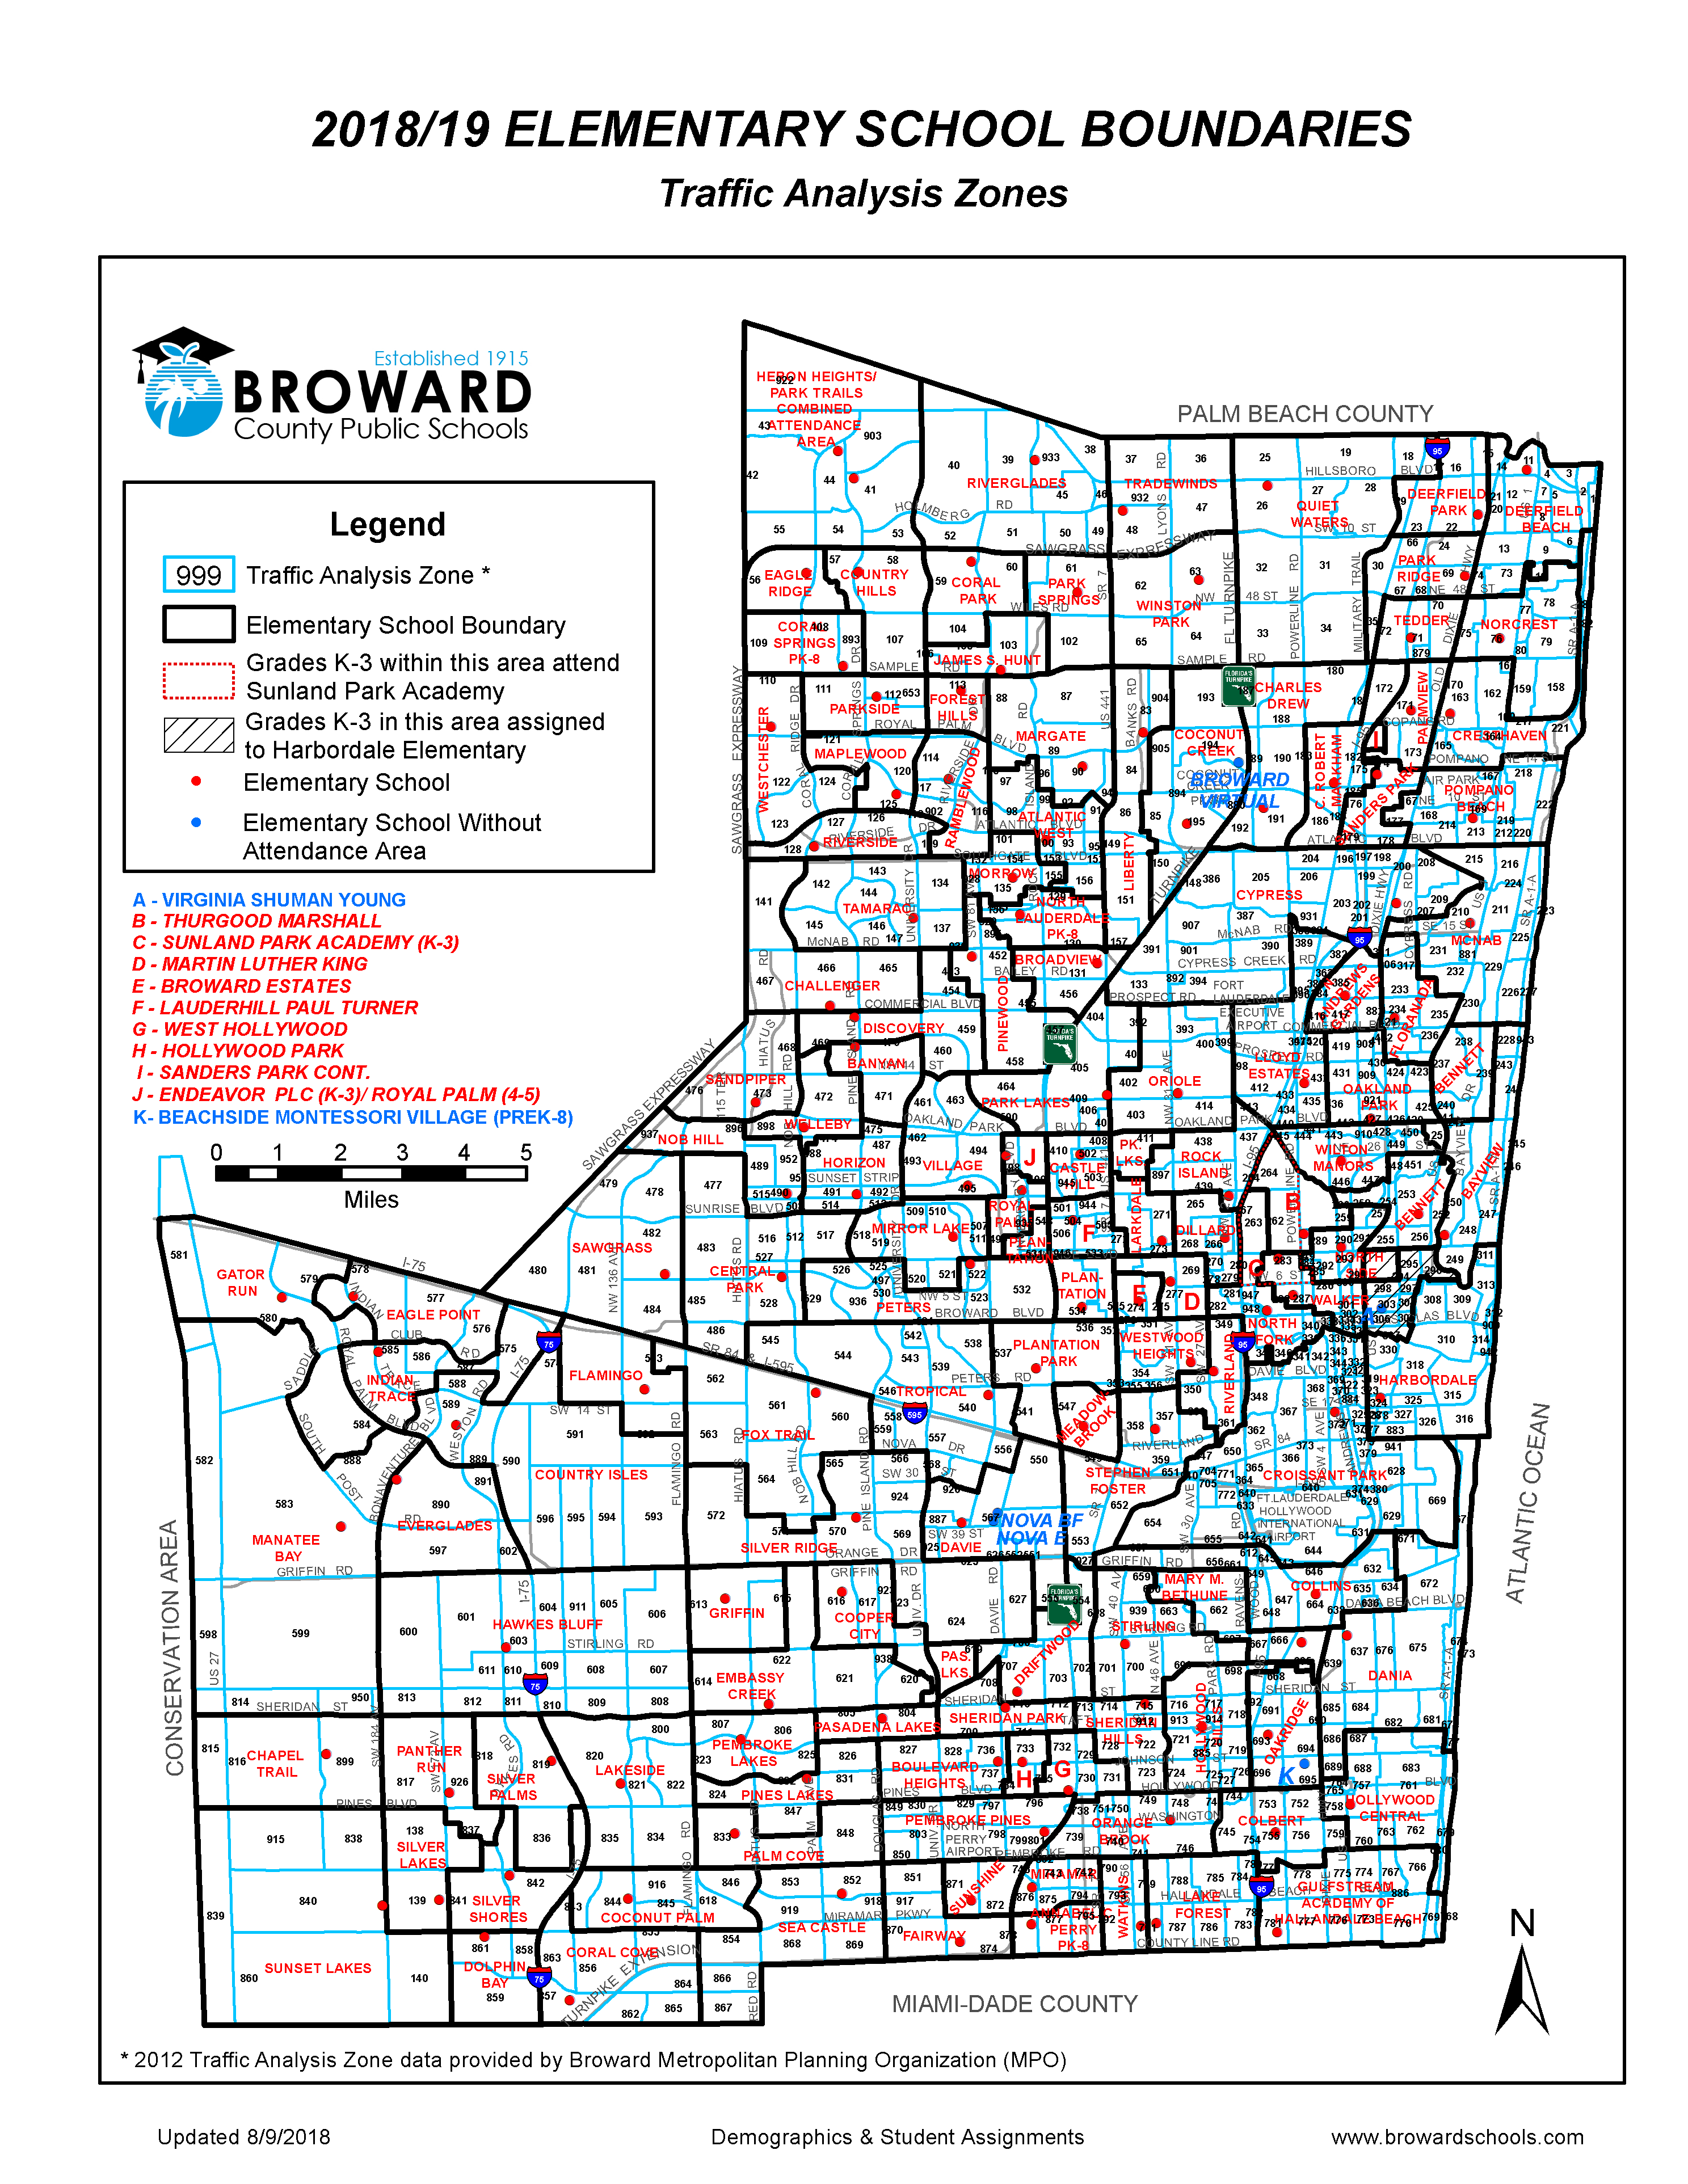 Maps and Data / TAZ Maps Broward County Map on st. johns county map, miami-dade county map, nova southeastern university, fort lauderdale map, orange county, hillsborough county, pinellas county, collier county, sarasota county map, west palm beach map, palm beach, delray beach map, west volusia county map, polk county, fort lauderdale, miami-dade county, florida, ann arbor county map, st. augustine, highlands county road map, pompano beach, volusia county, palm beach zip code map, pasco county map, key west county map, florida map, brevard county, west palm beach, boca raton map, palm beach county, pompano beach map, city of coral springs map, brevard county map, boca raton, palm beach county map, monroe county, duval county, deerfield beach, miramar map, allapattah map,